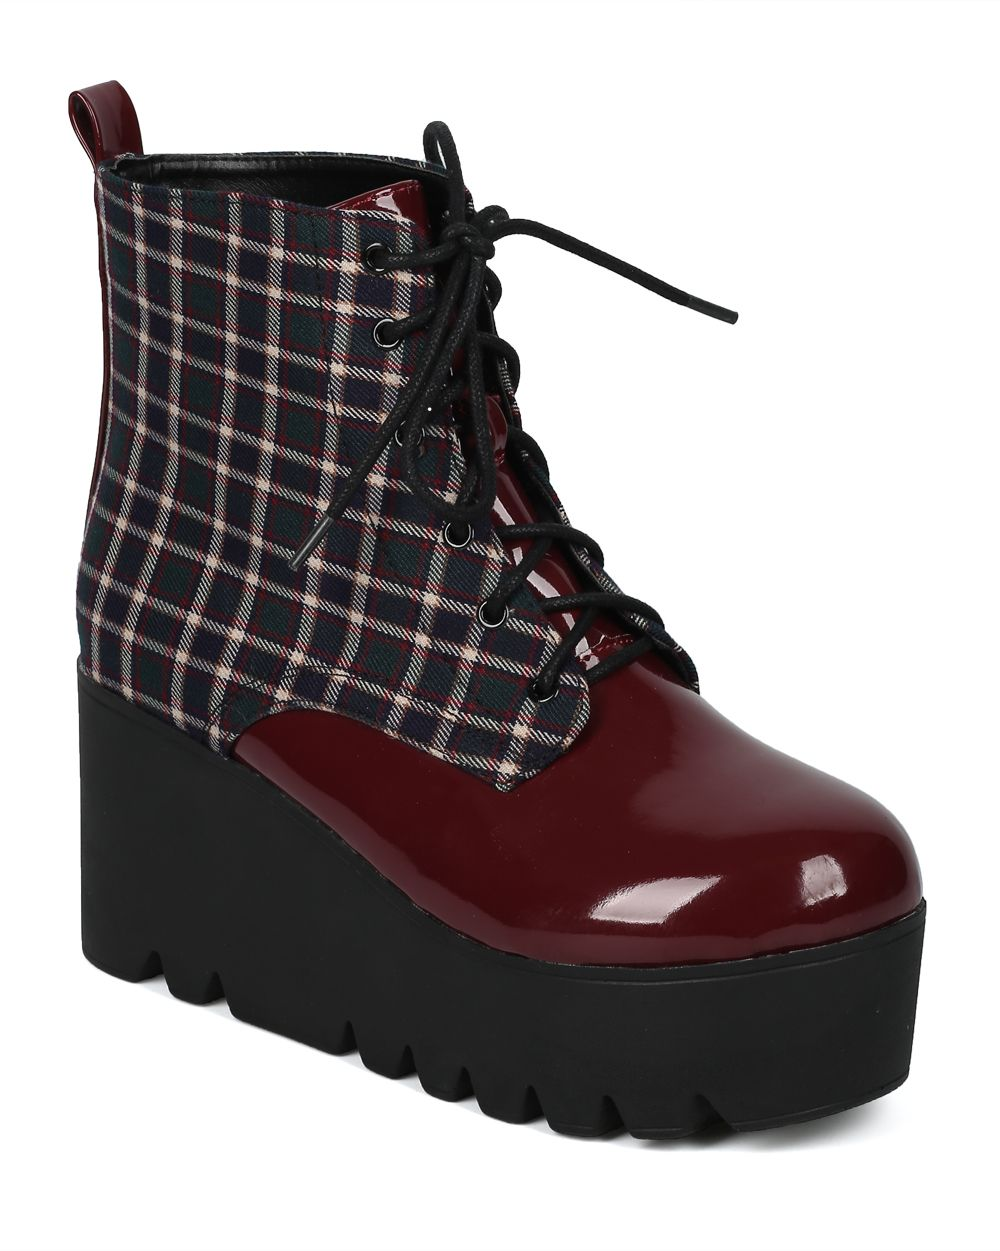 Women Mixed Media Plaid Lug Sole Platform Wedge Bootie - HF65 by Qupid Collection